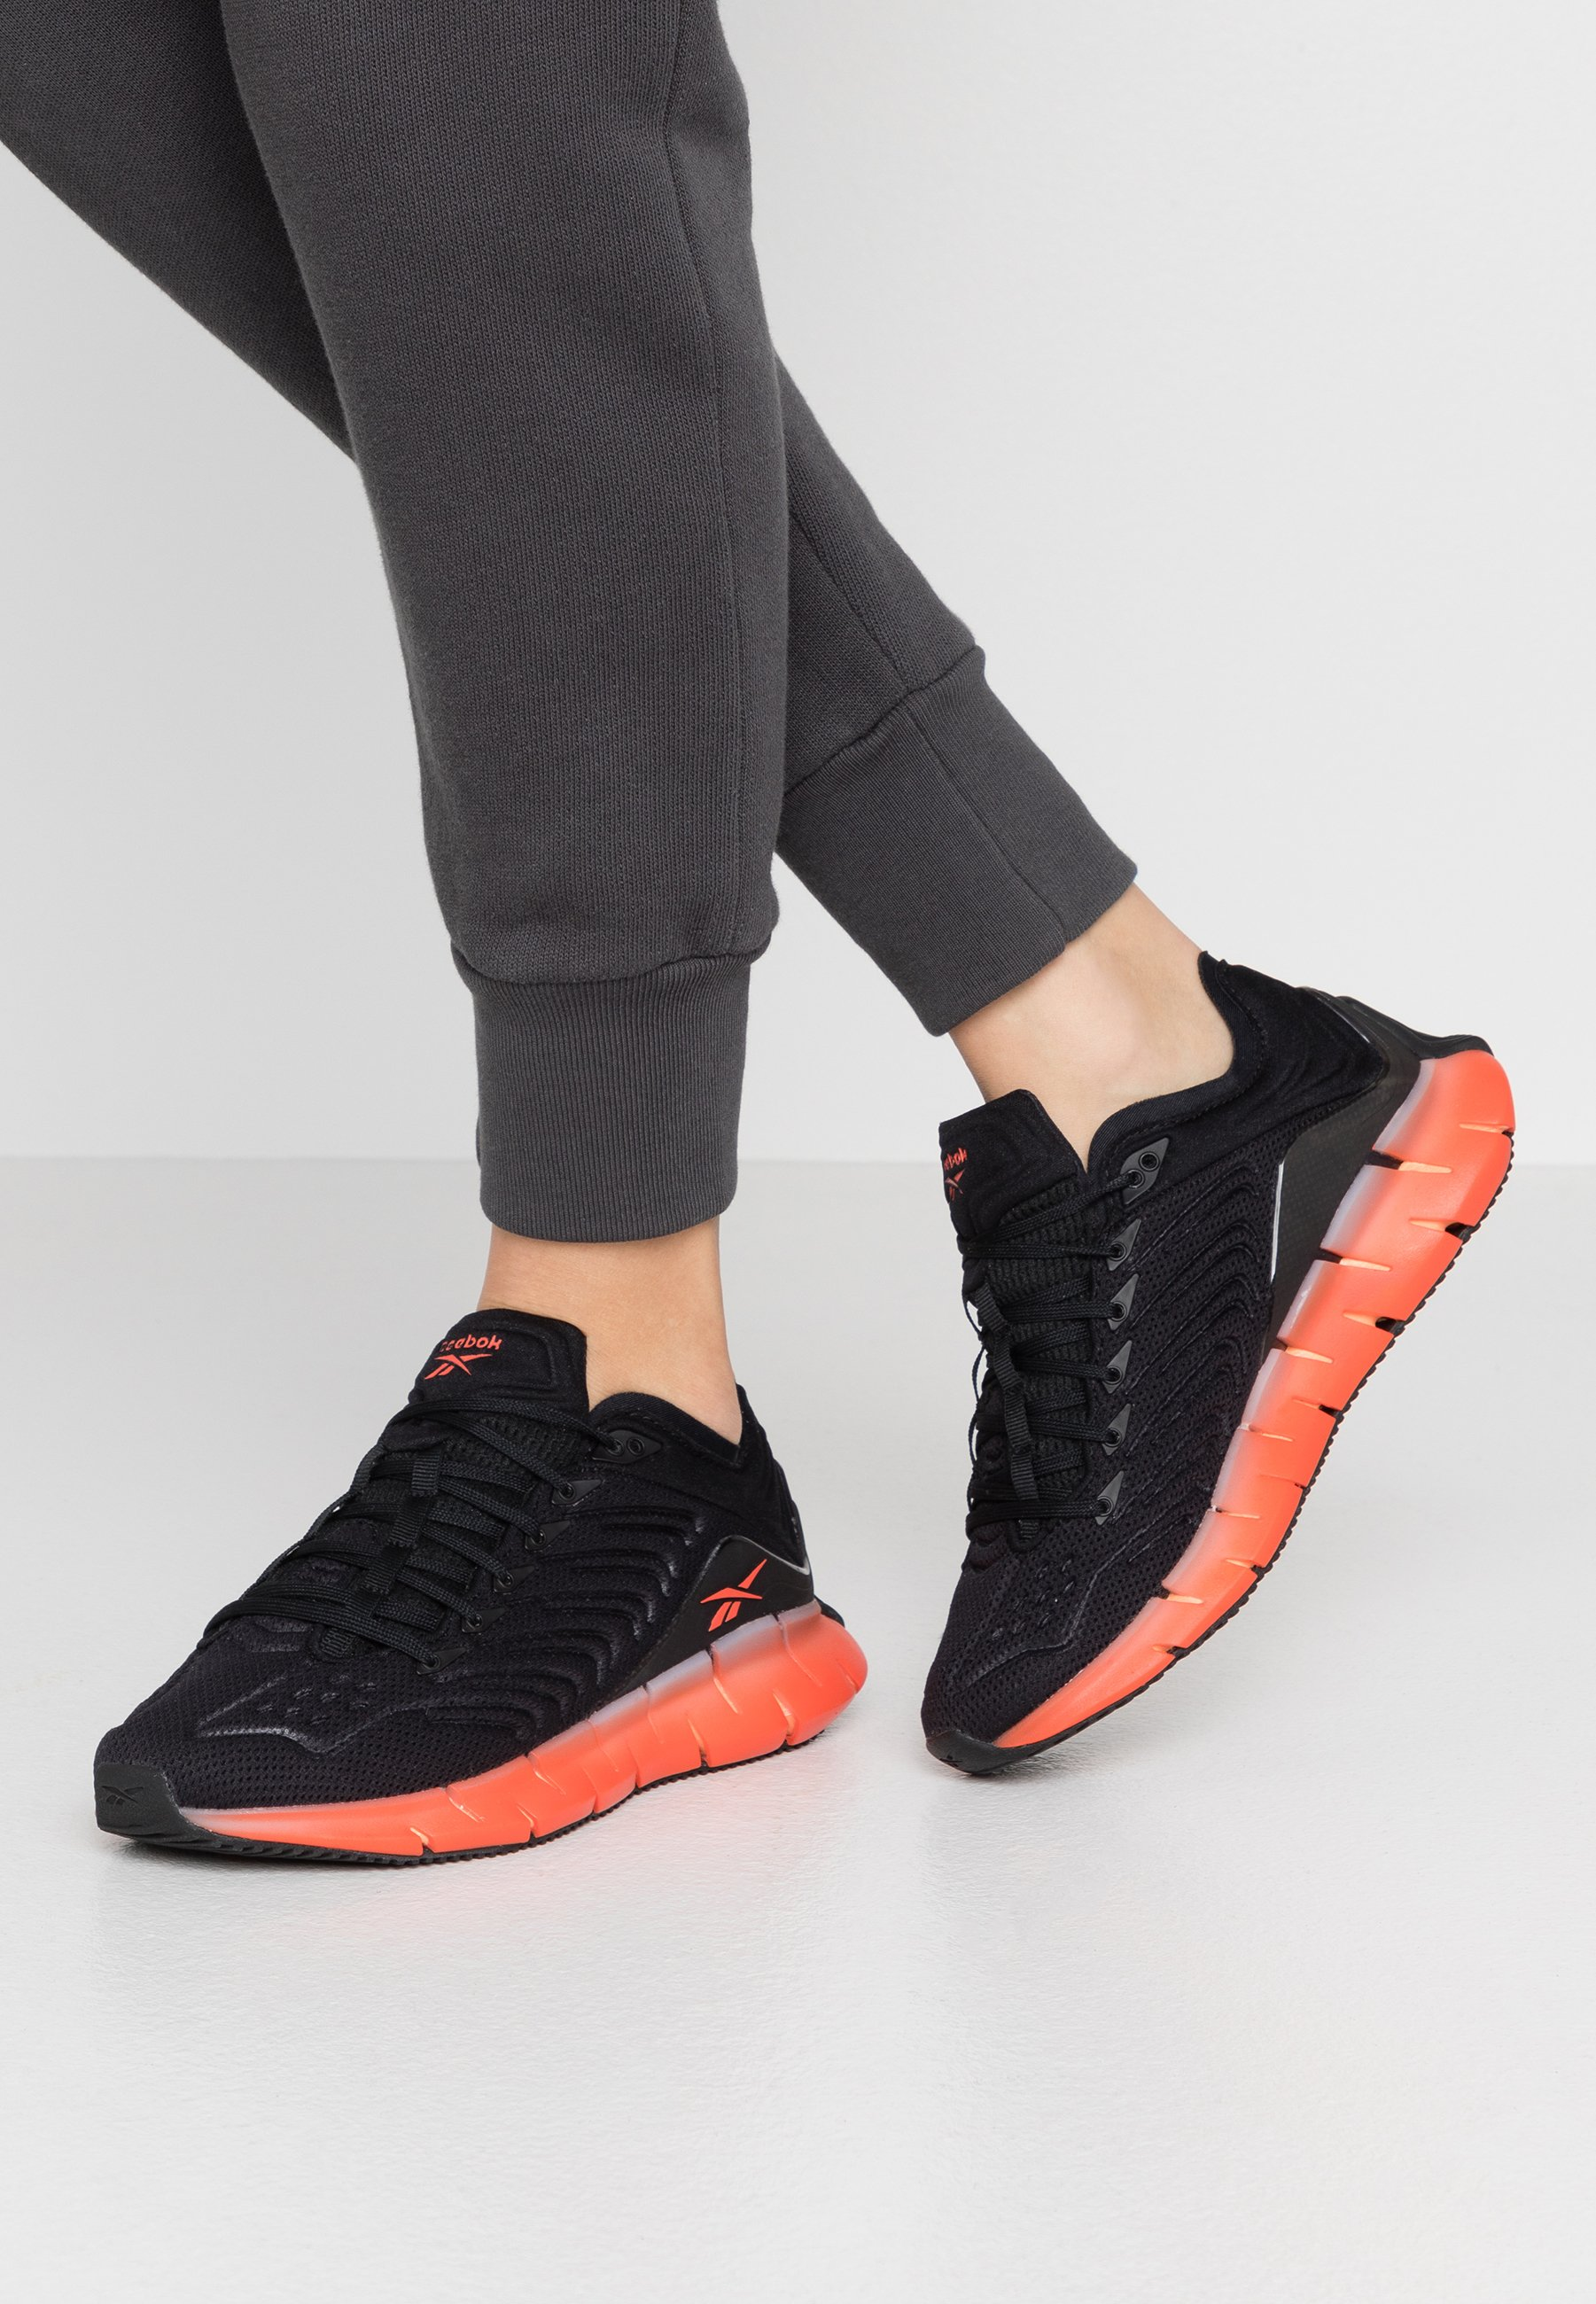 Reebok Classic ZIG KINETICA Joggesko blacksun orange